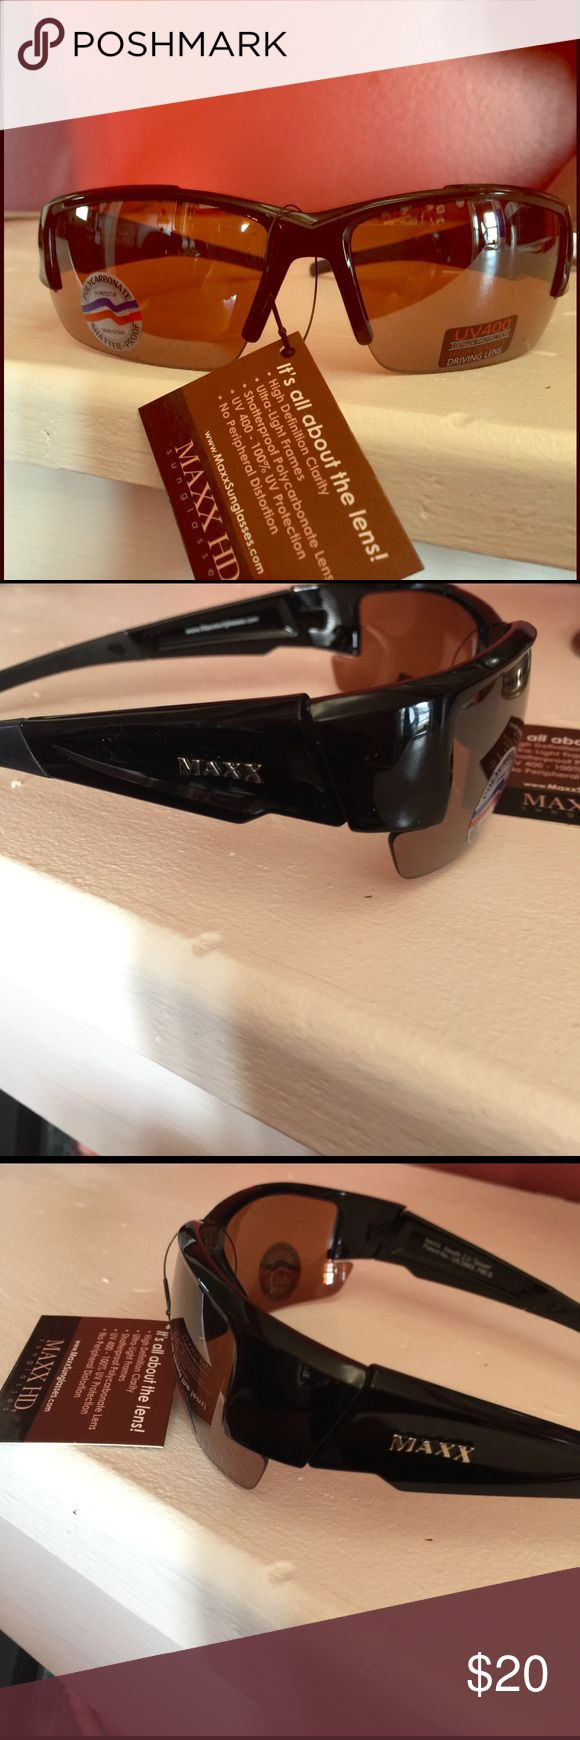 Maxx sunglasses UV 400 with high def clarity. Great for sports Maxx Accessories Sunglasses